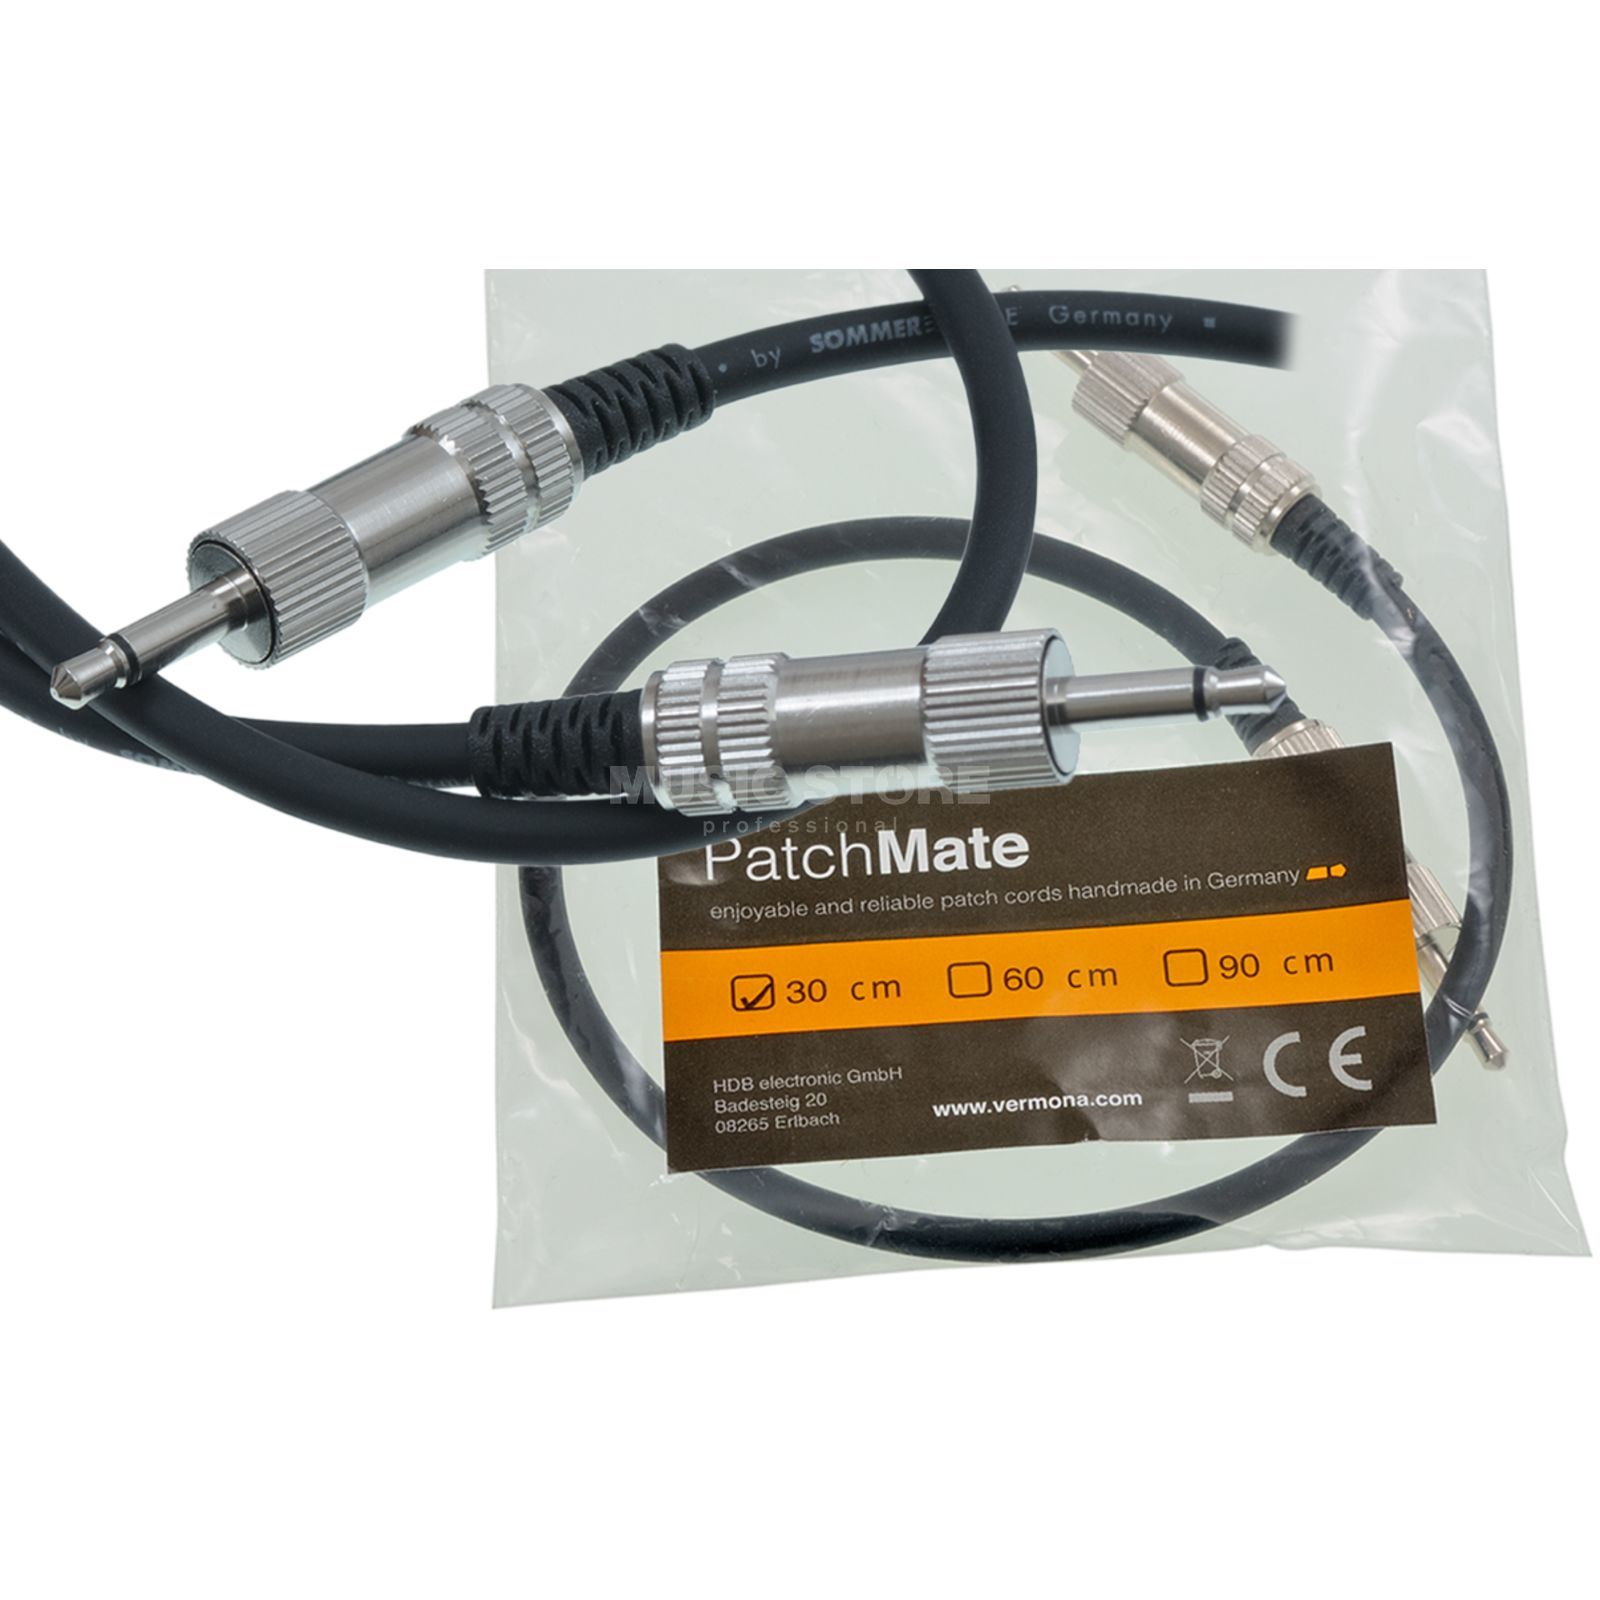 Vermona Modulear Patchmate Cable 30cm deluxe patchcable Produktbillede